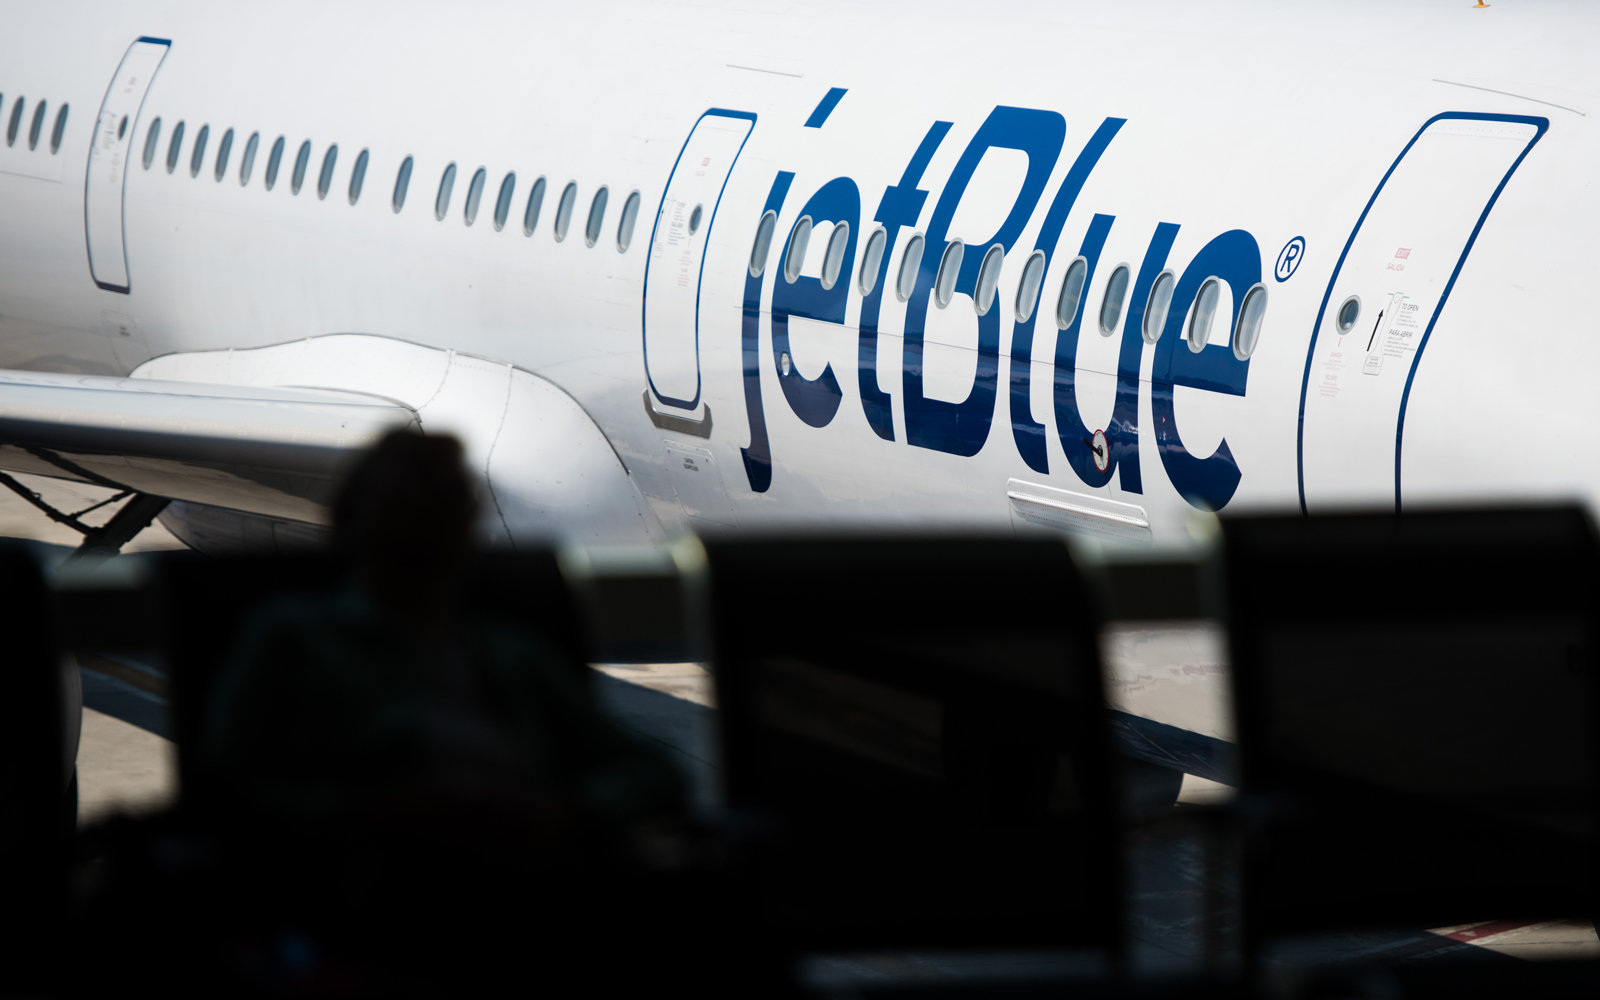 JetBlue Airplane at gate